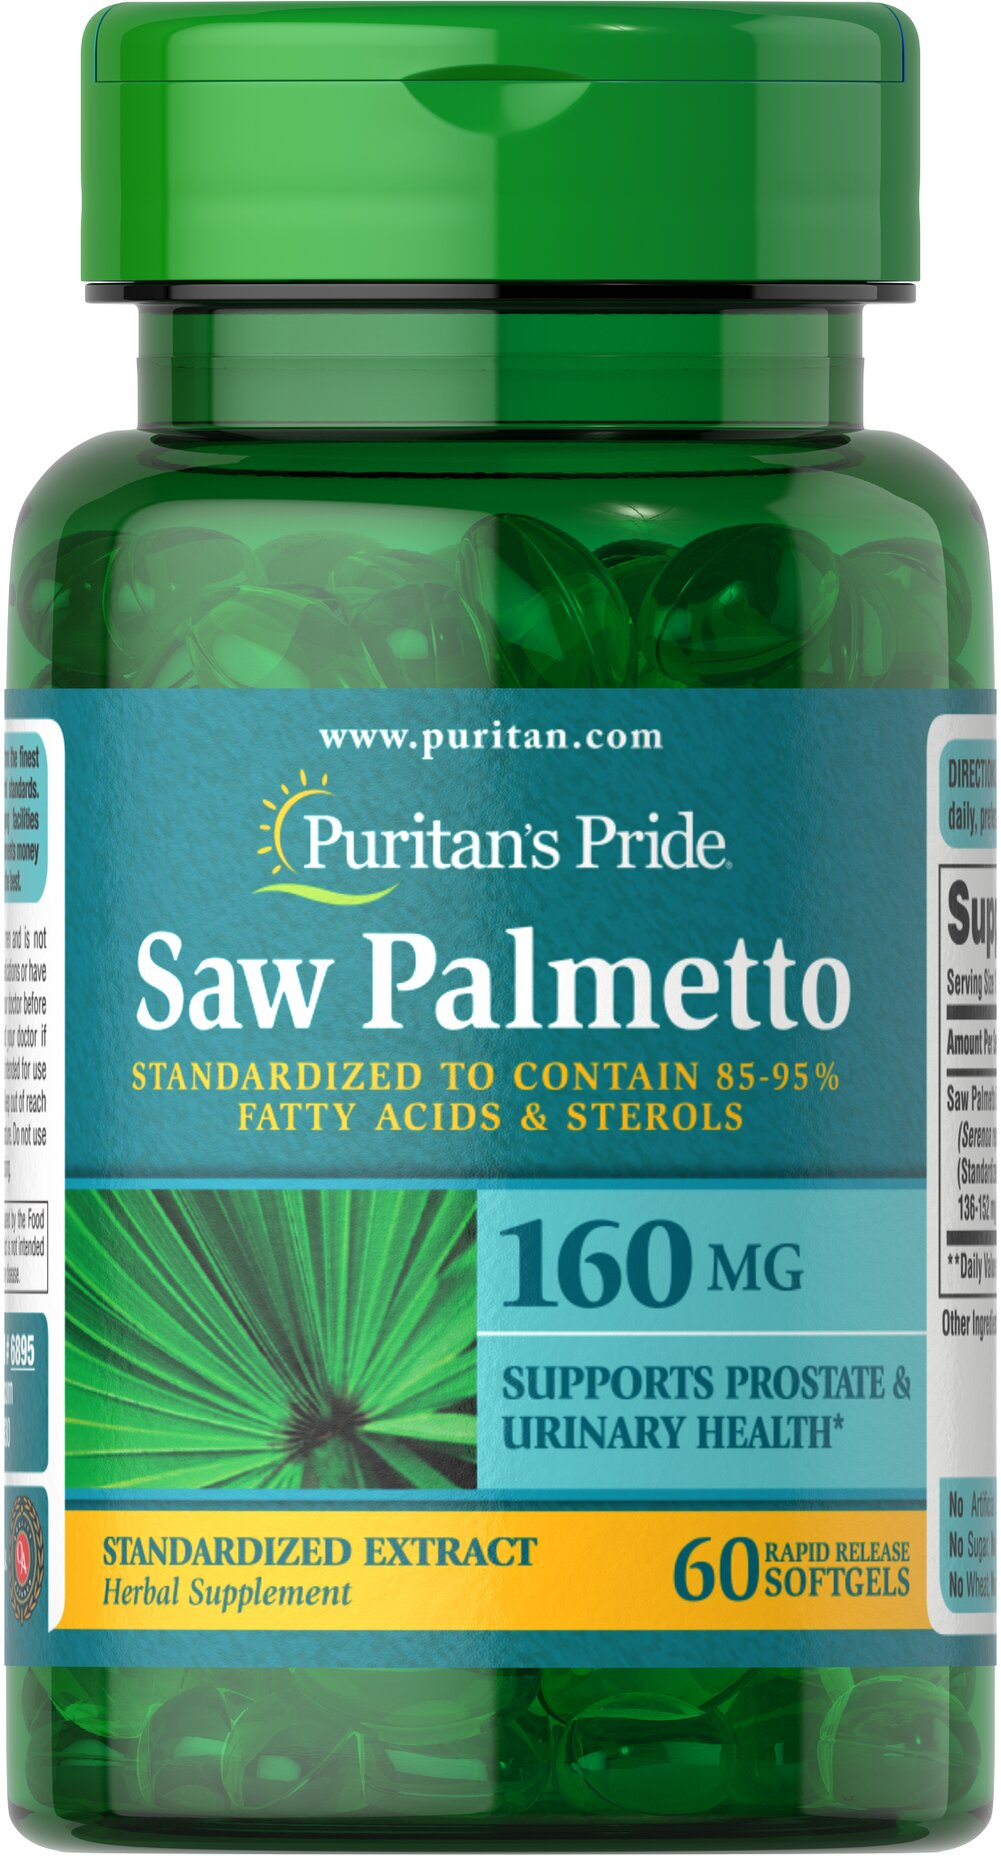 Saw Palmetto Standardized Extract 160 mg <p>Men the world over are discovering the beneficial properties of Saw Palmetto. Saw Palmetto contains phytochemicals, which support prostate health and urinary health.**</p><p>Our Saw Palmetto formula is fully assayed and standardized to ensure that each softgel contains 85-95% fatty acids and active sterols, which guarantees bioactivity.**</p> 60 Softgels 160 mg $8.49